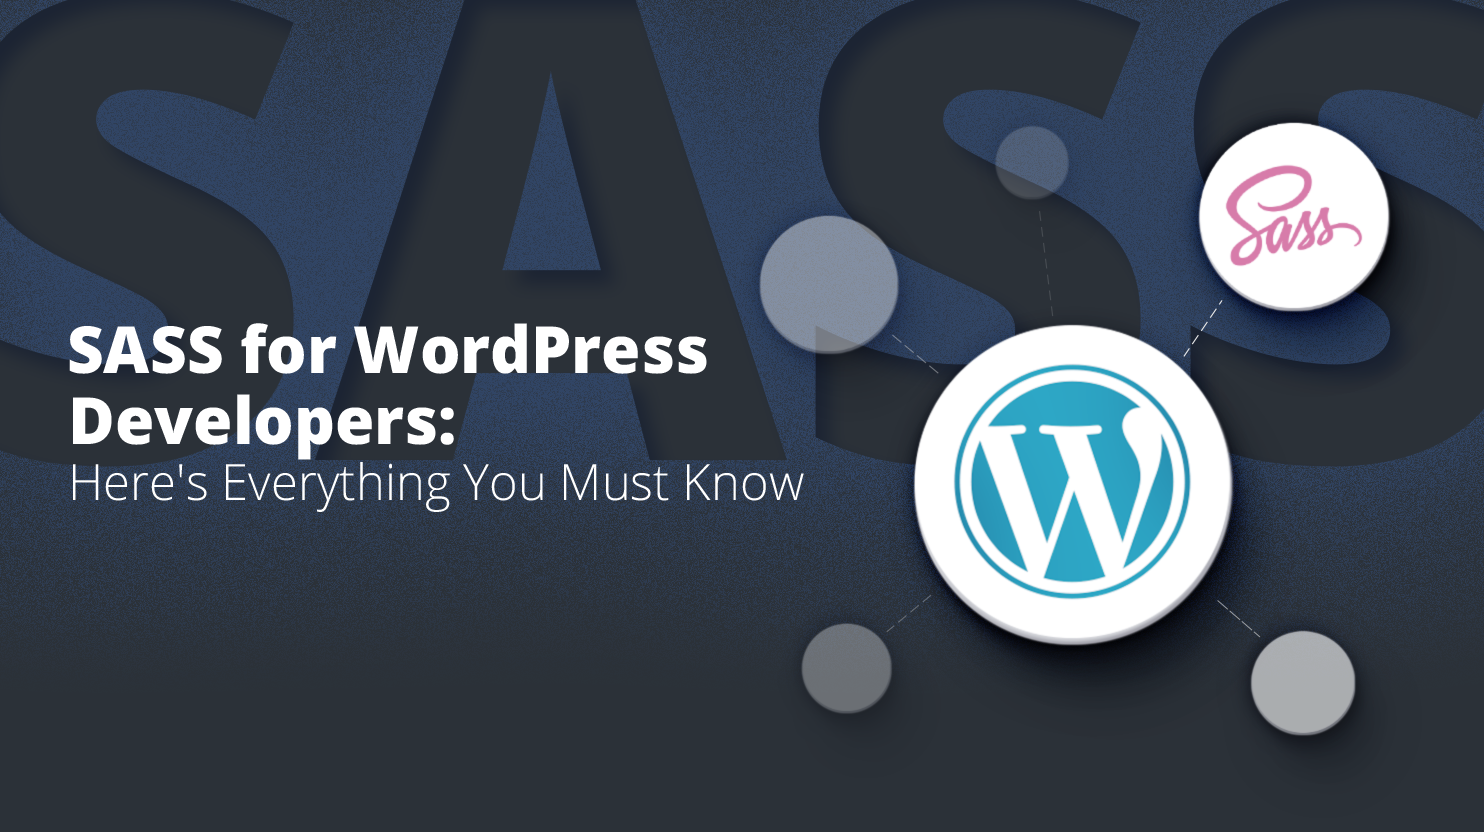 Logo of WordPress and SASS on a black background